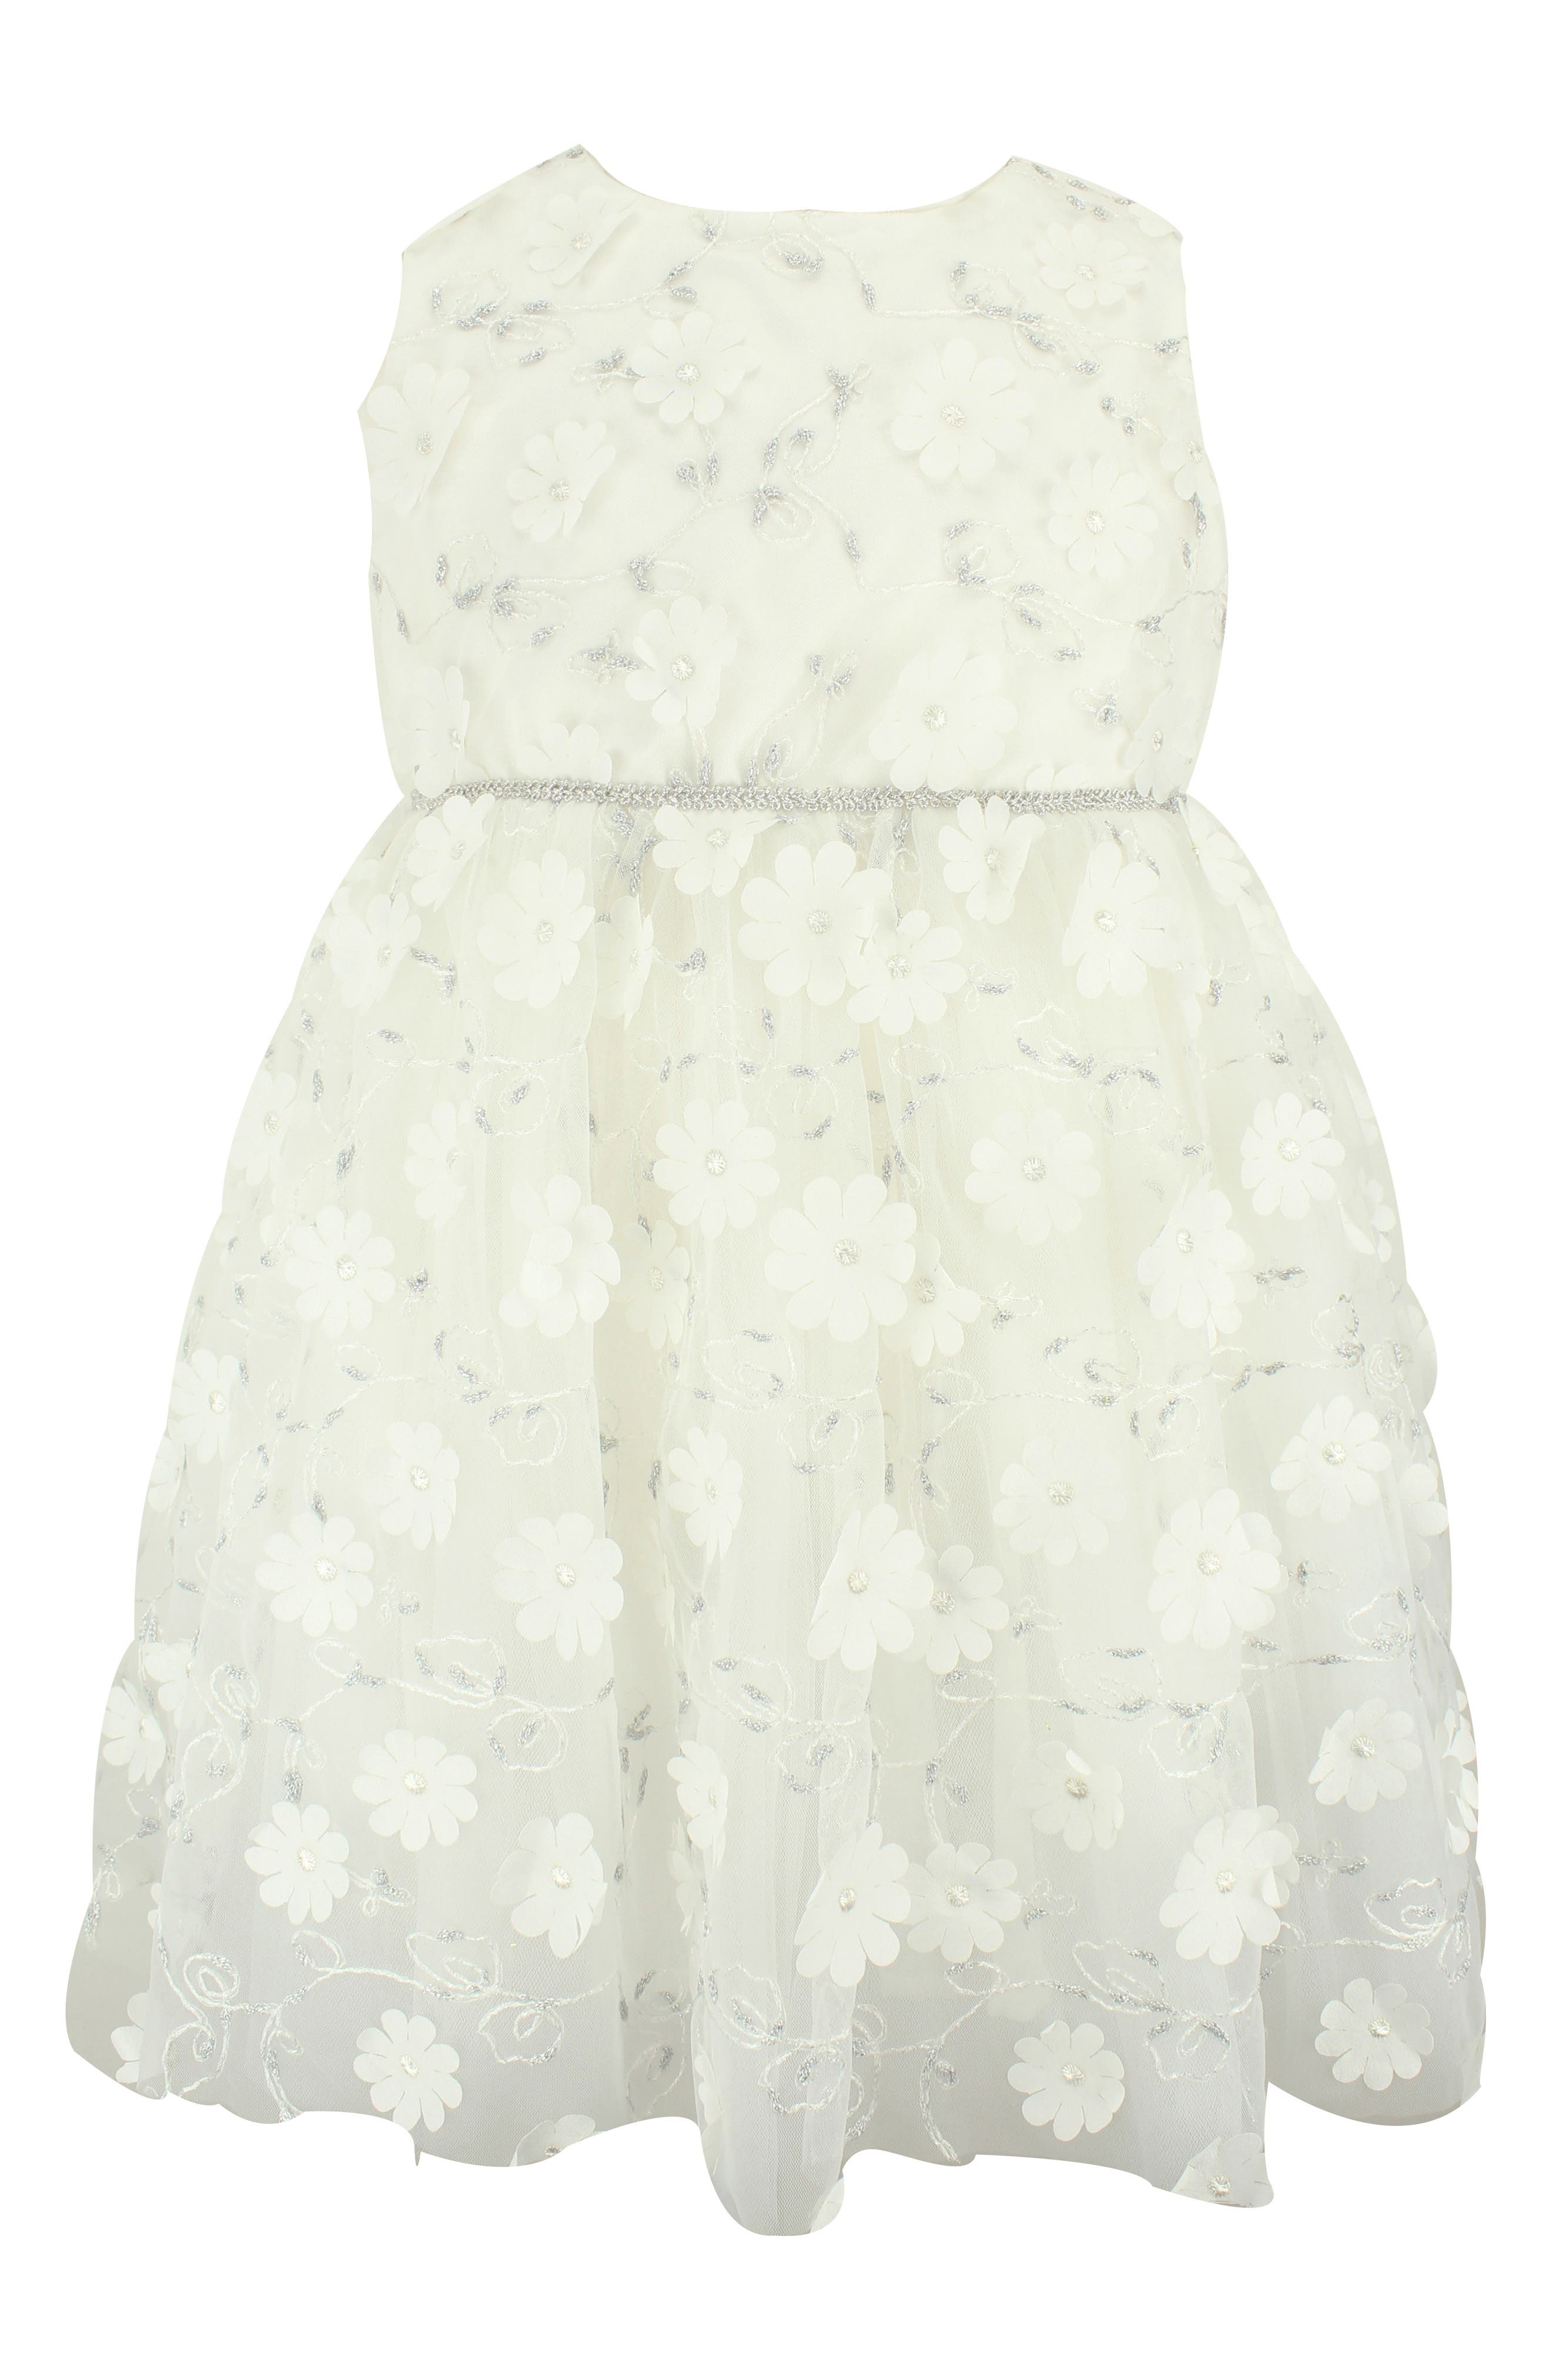 POPATU Floral & Metallic Embroidery Tulle Dress, Main, color, WHITE